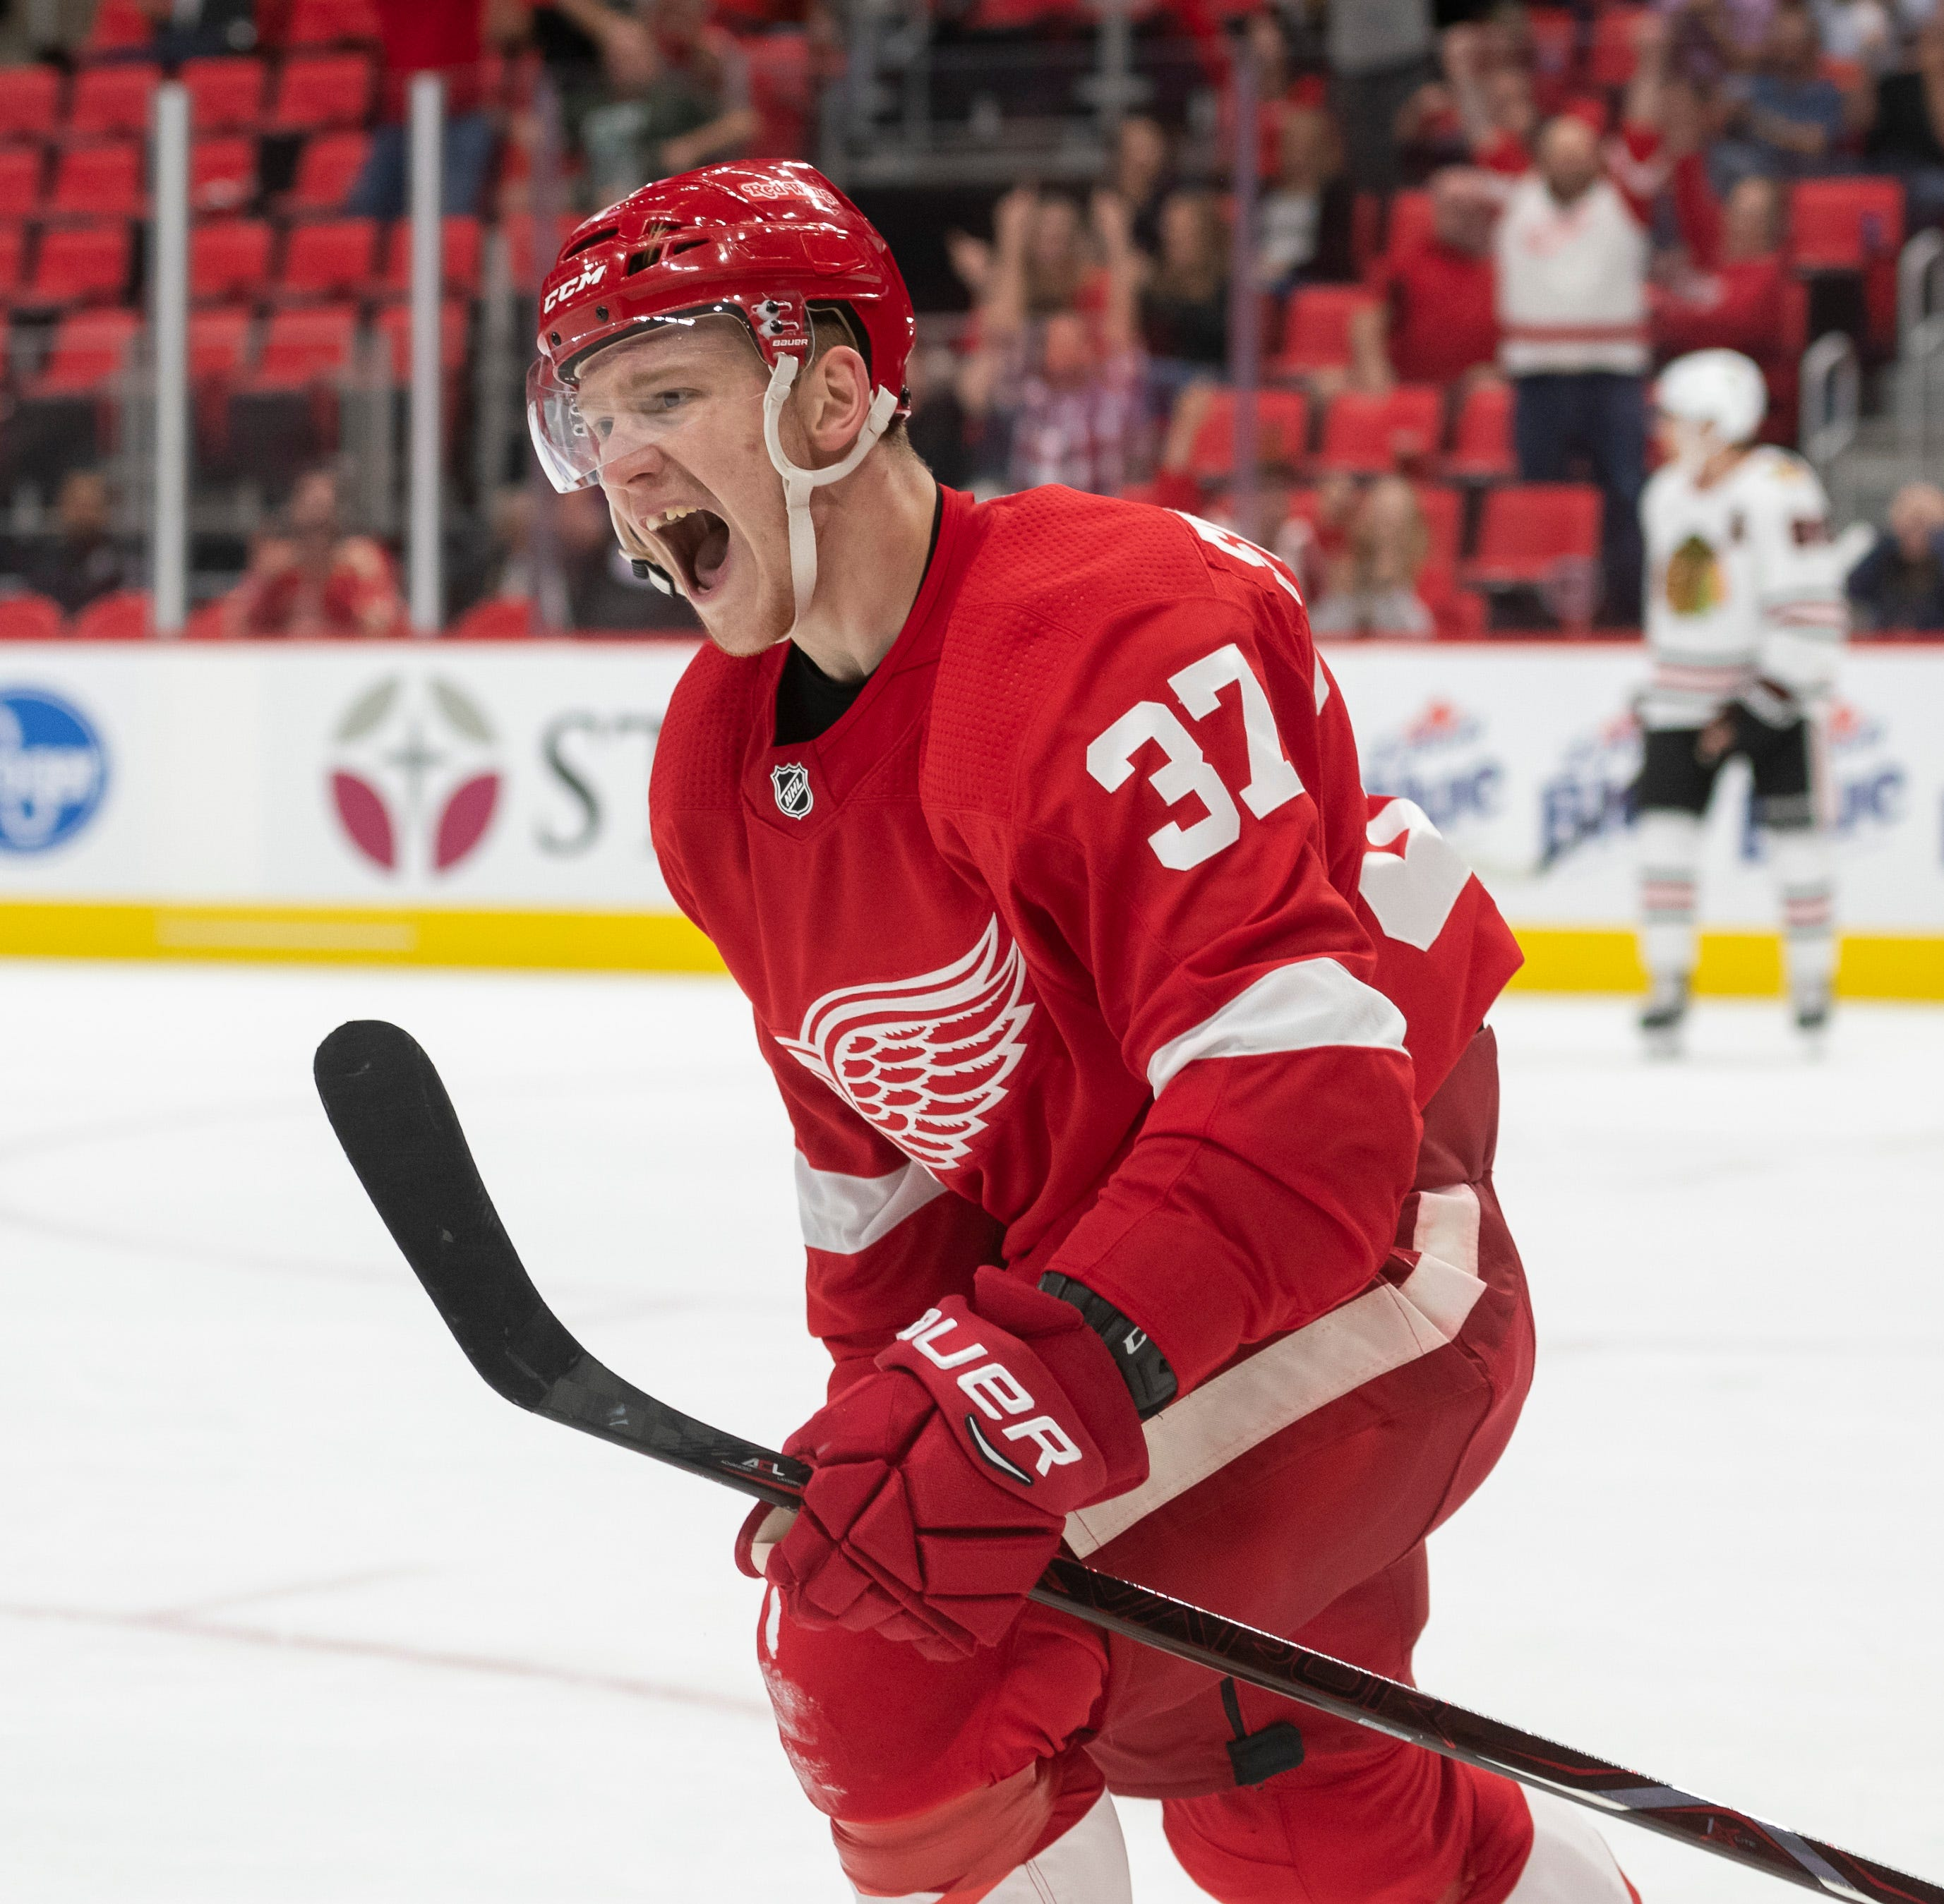 Filip Zadina struggles in debut as Wings clip Blackhawks